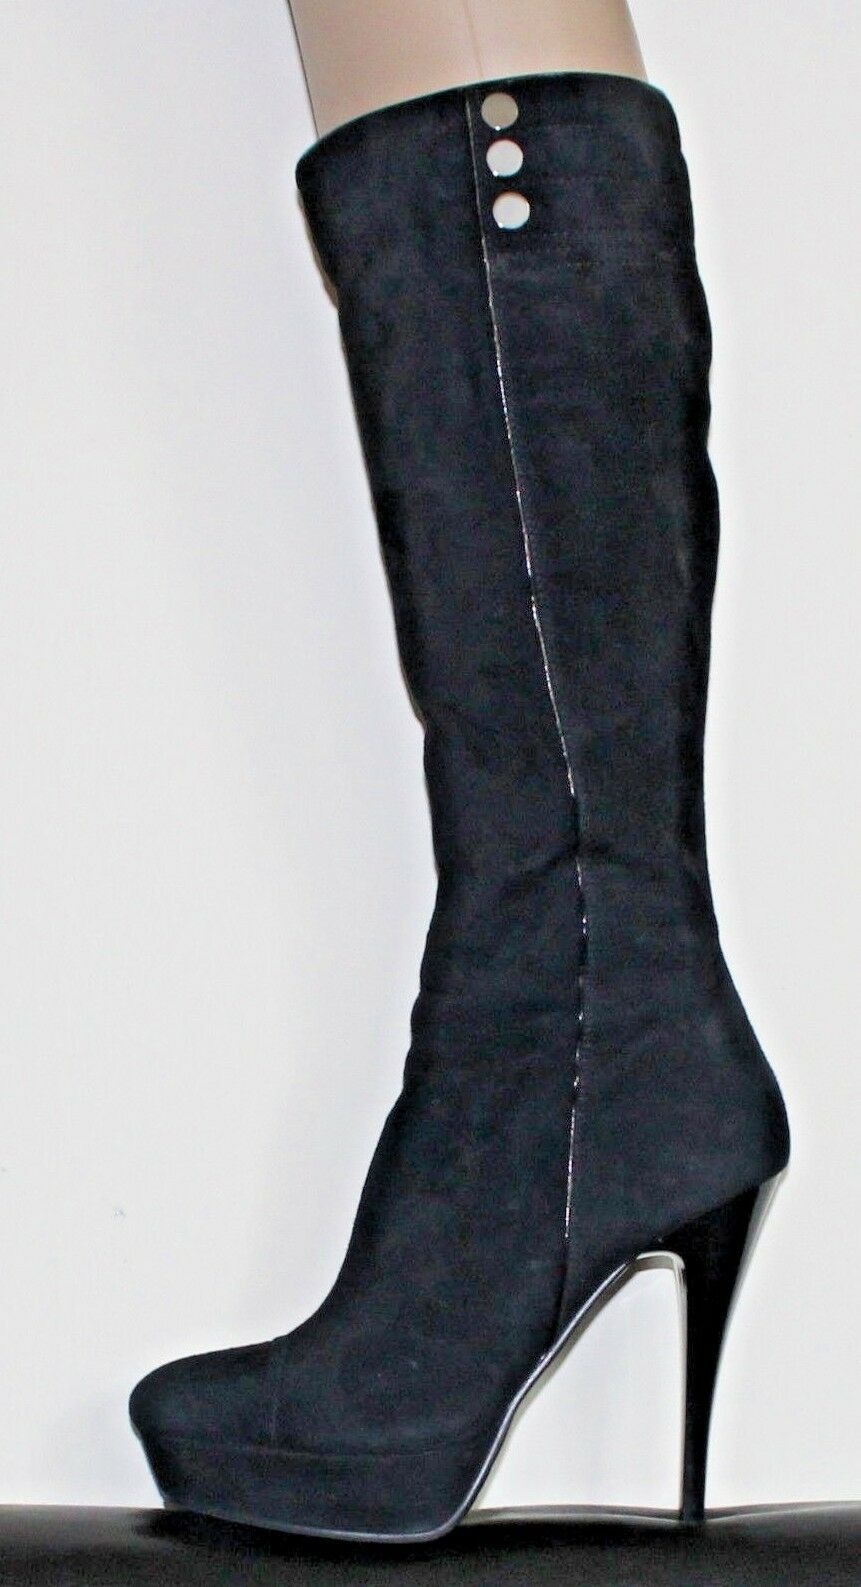 LADIES WOMEN SUEDE PLATFORM STILETTO HEEL BOOTS SIZE 38